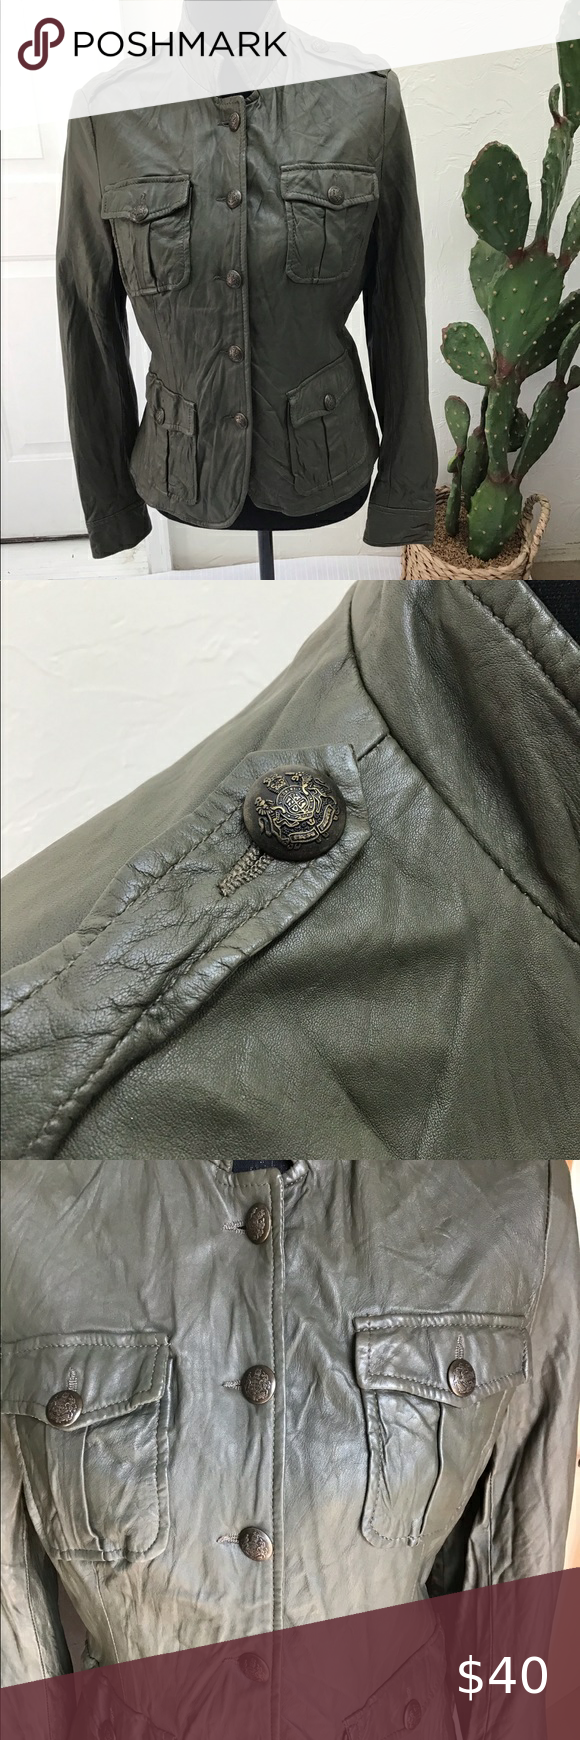 Military Inspired Olive Green Leather Jacket In 2020 Green Leather Jackets Olive Green Leather Jacket Leather Jacket [ 1740 x 580 Pixel ]